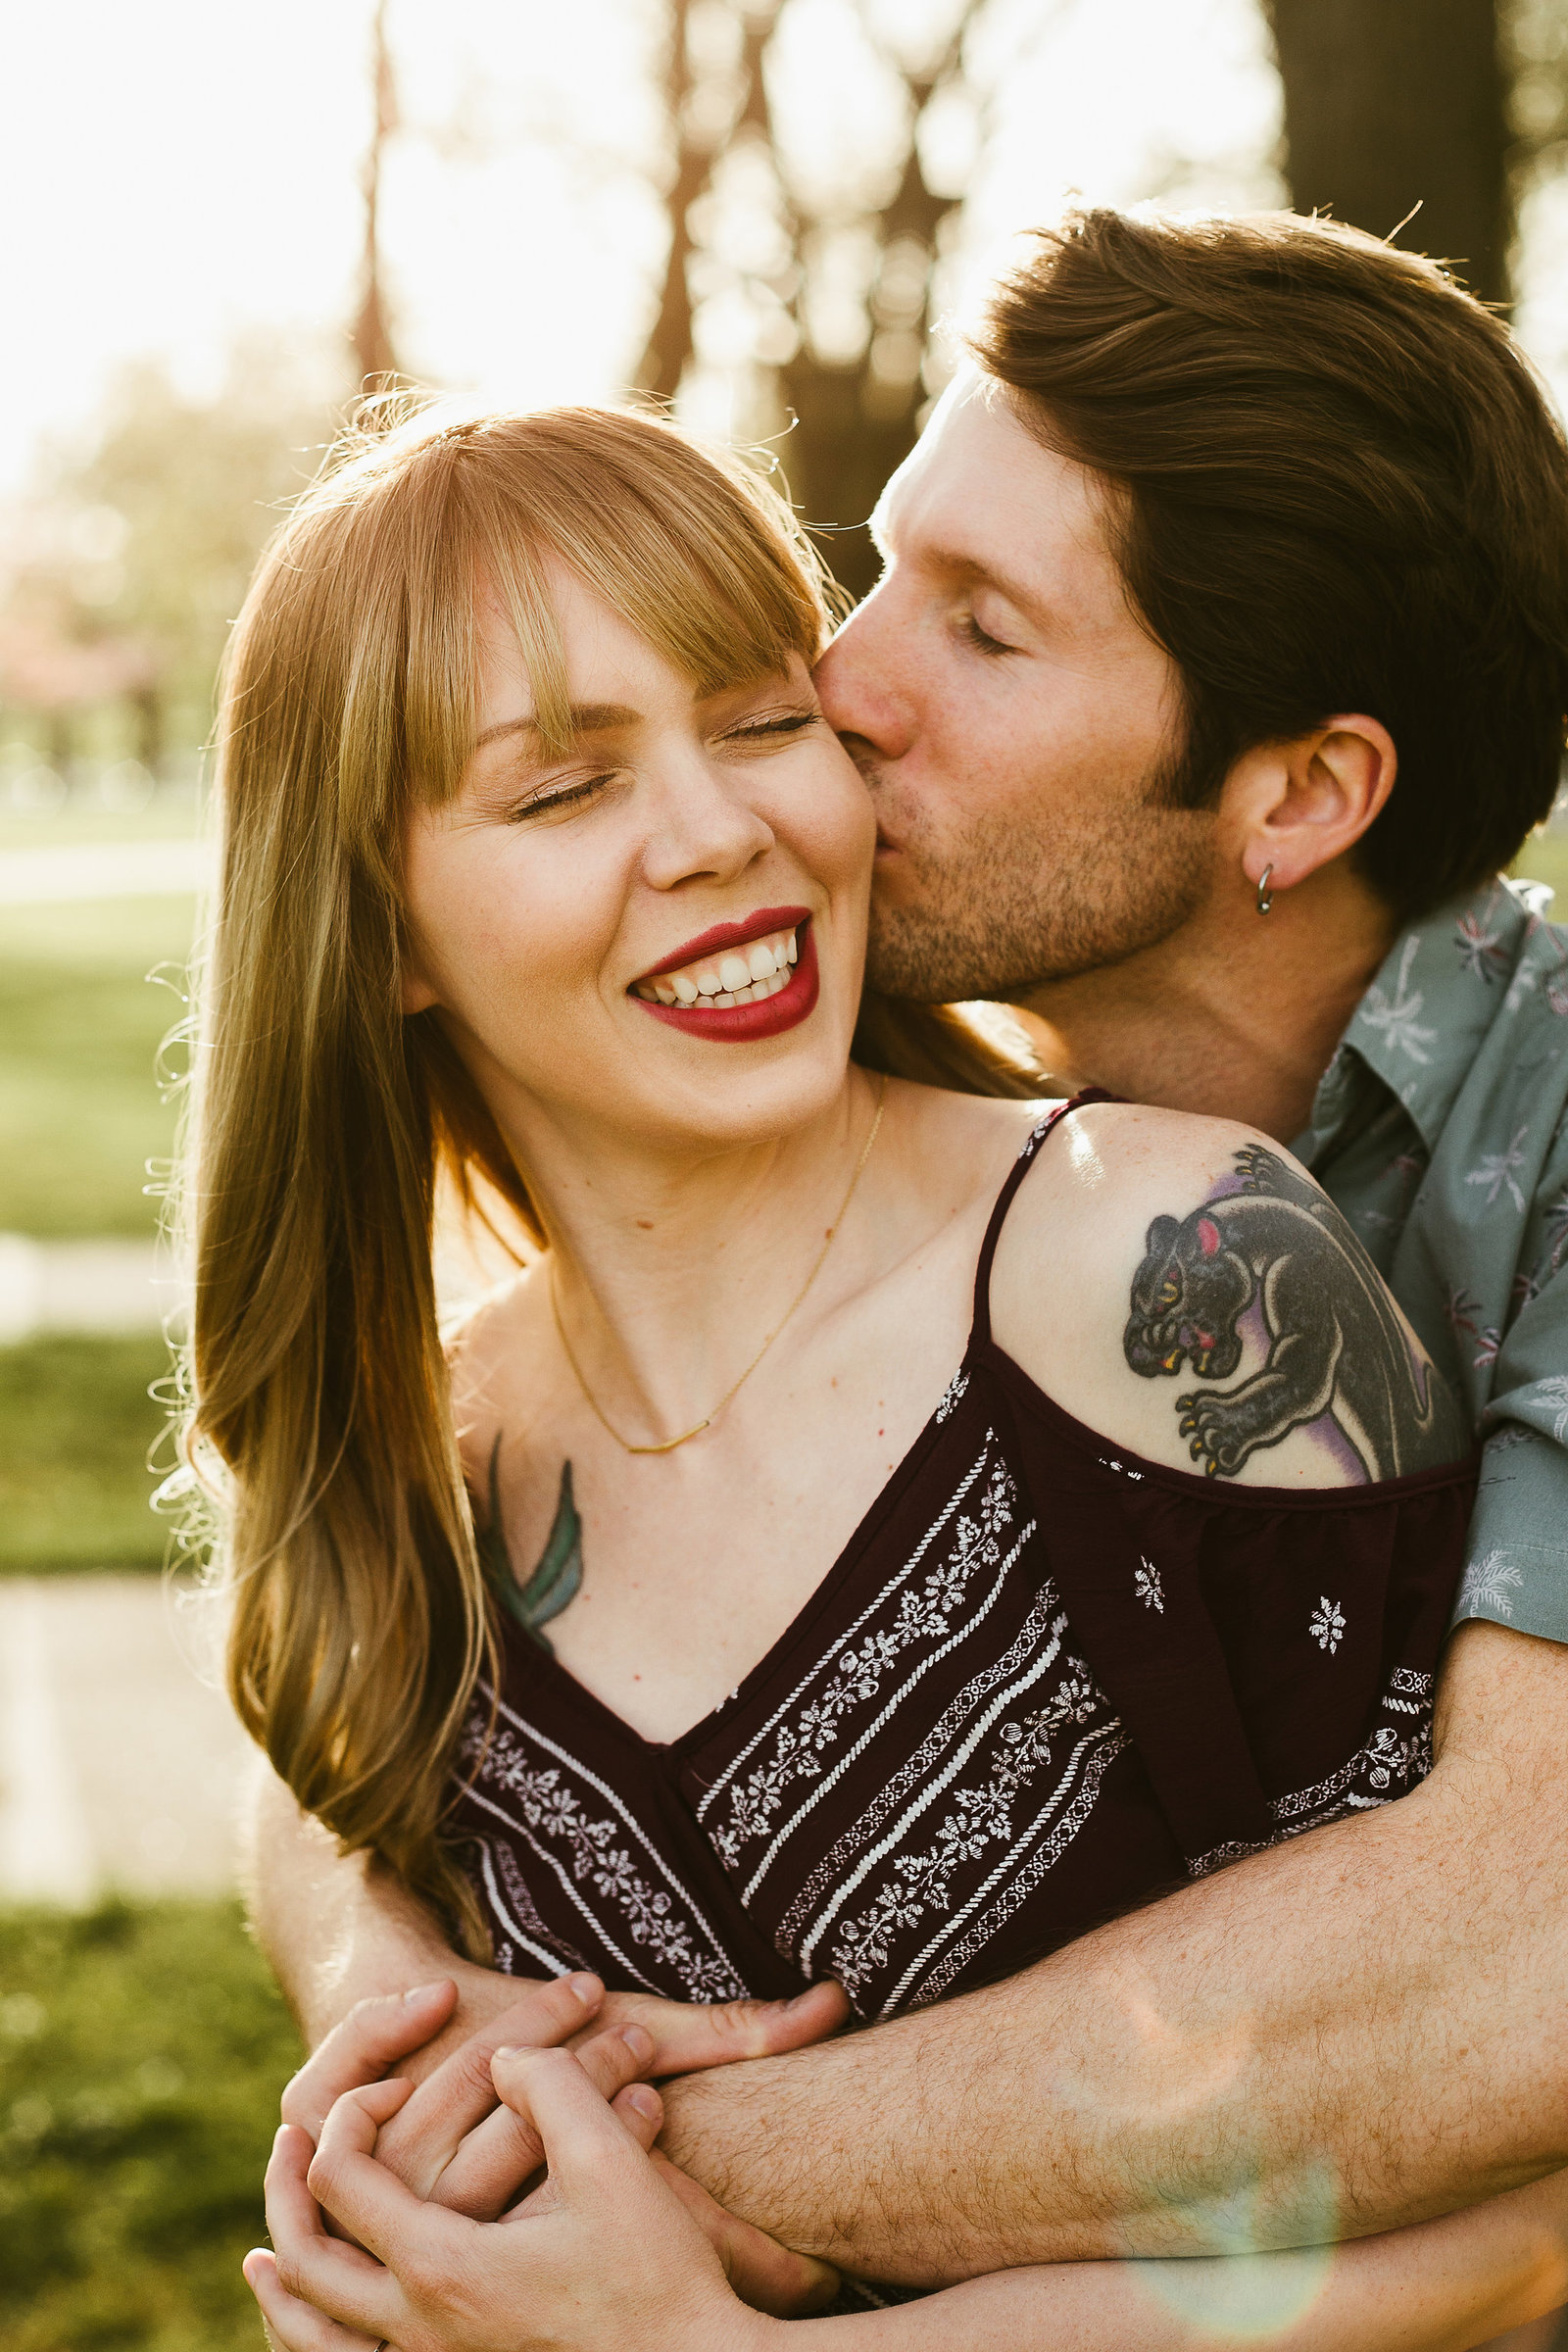 Sara-Lane-Stevie-Photography-Engagement-Shoot-Alyse-Michael-LRE-20B